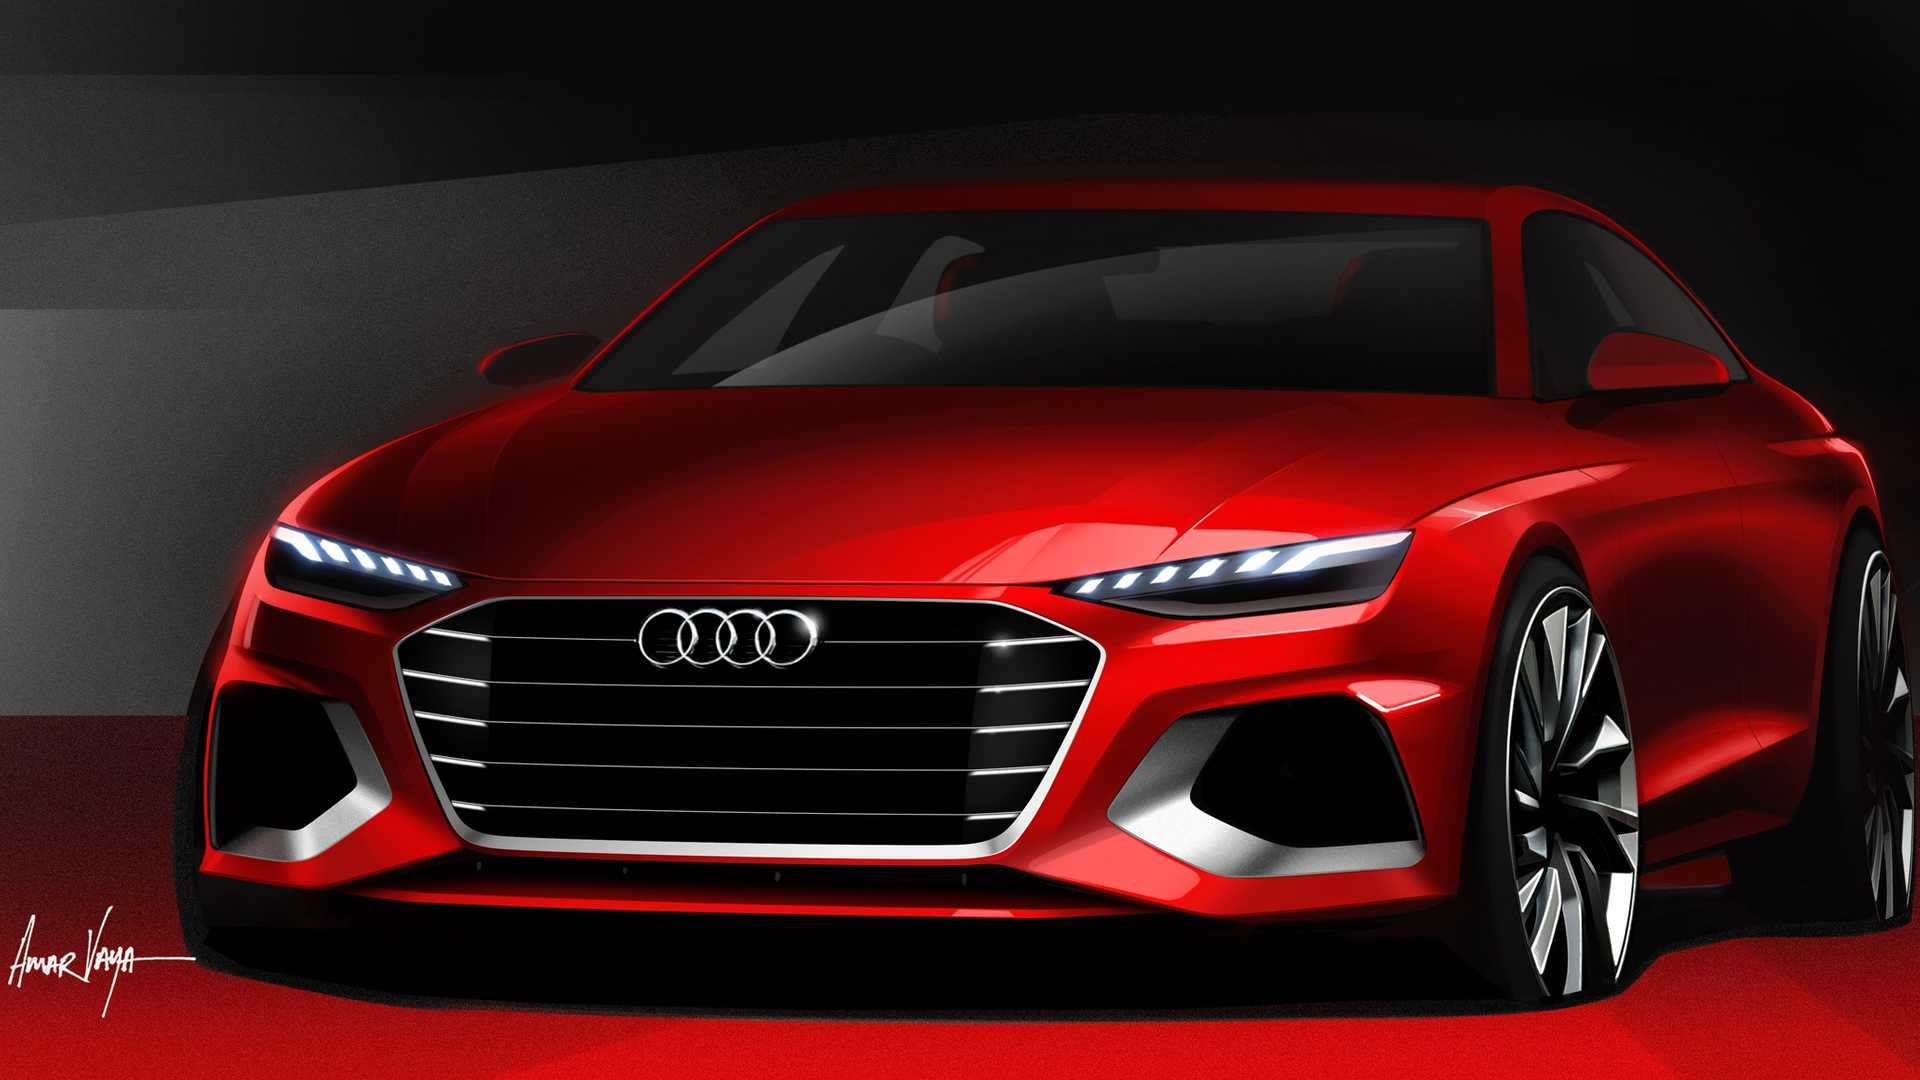 2020 Audi A4 Design Sketch Wallpapers (11)